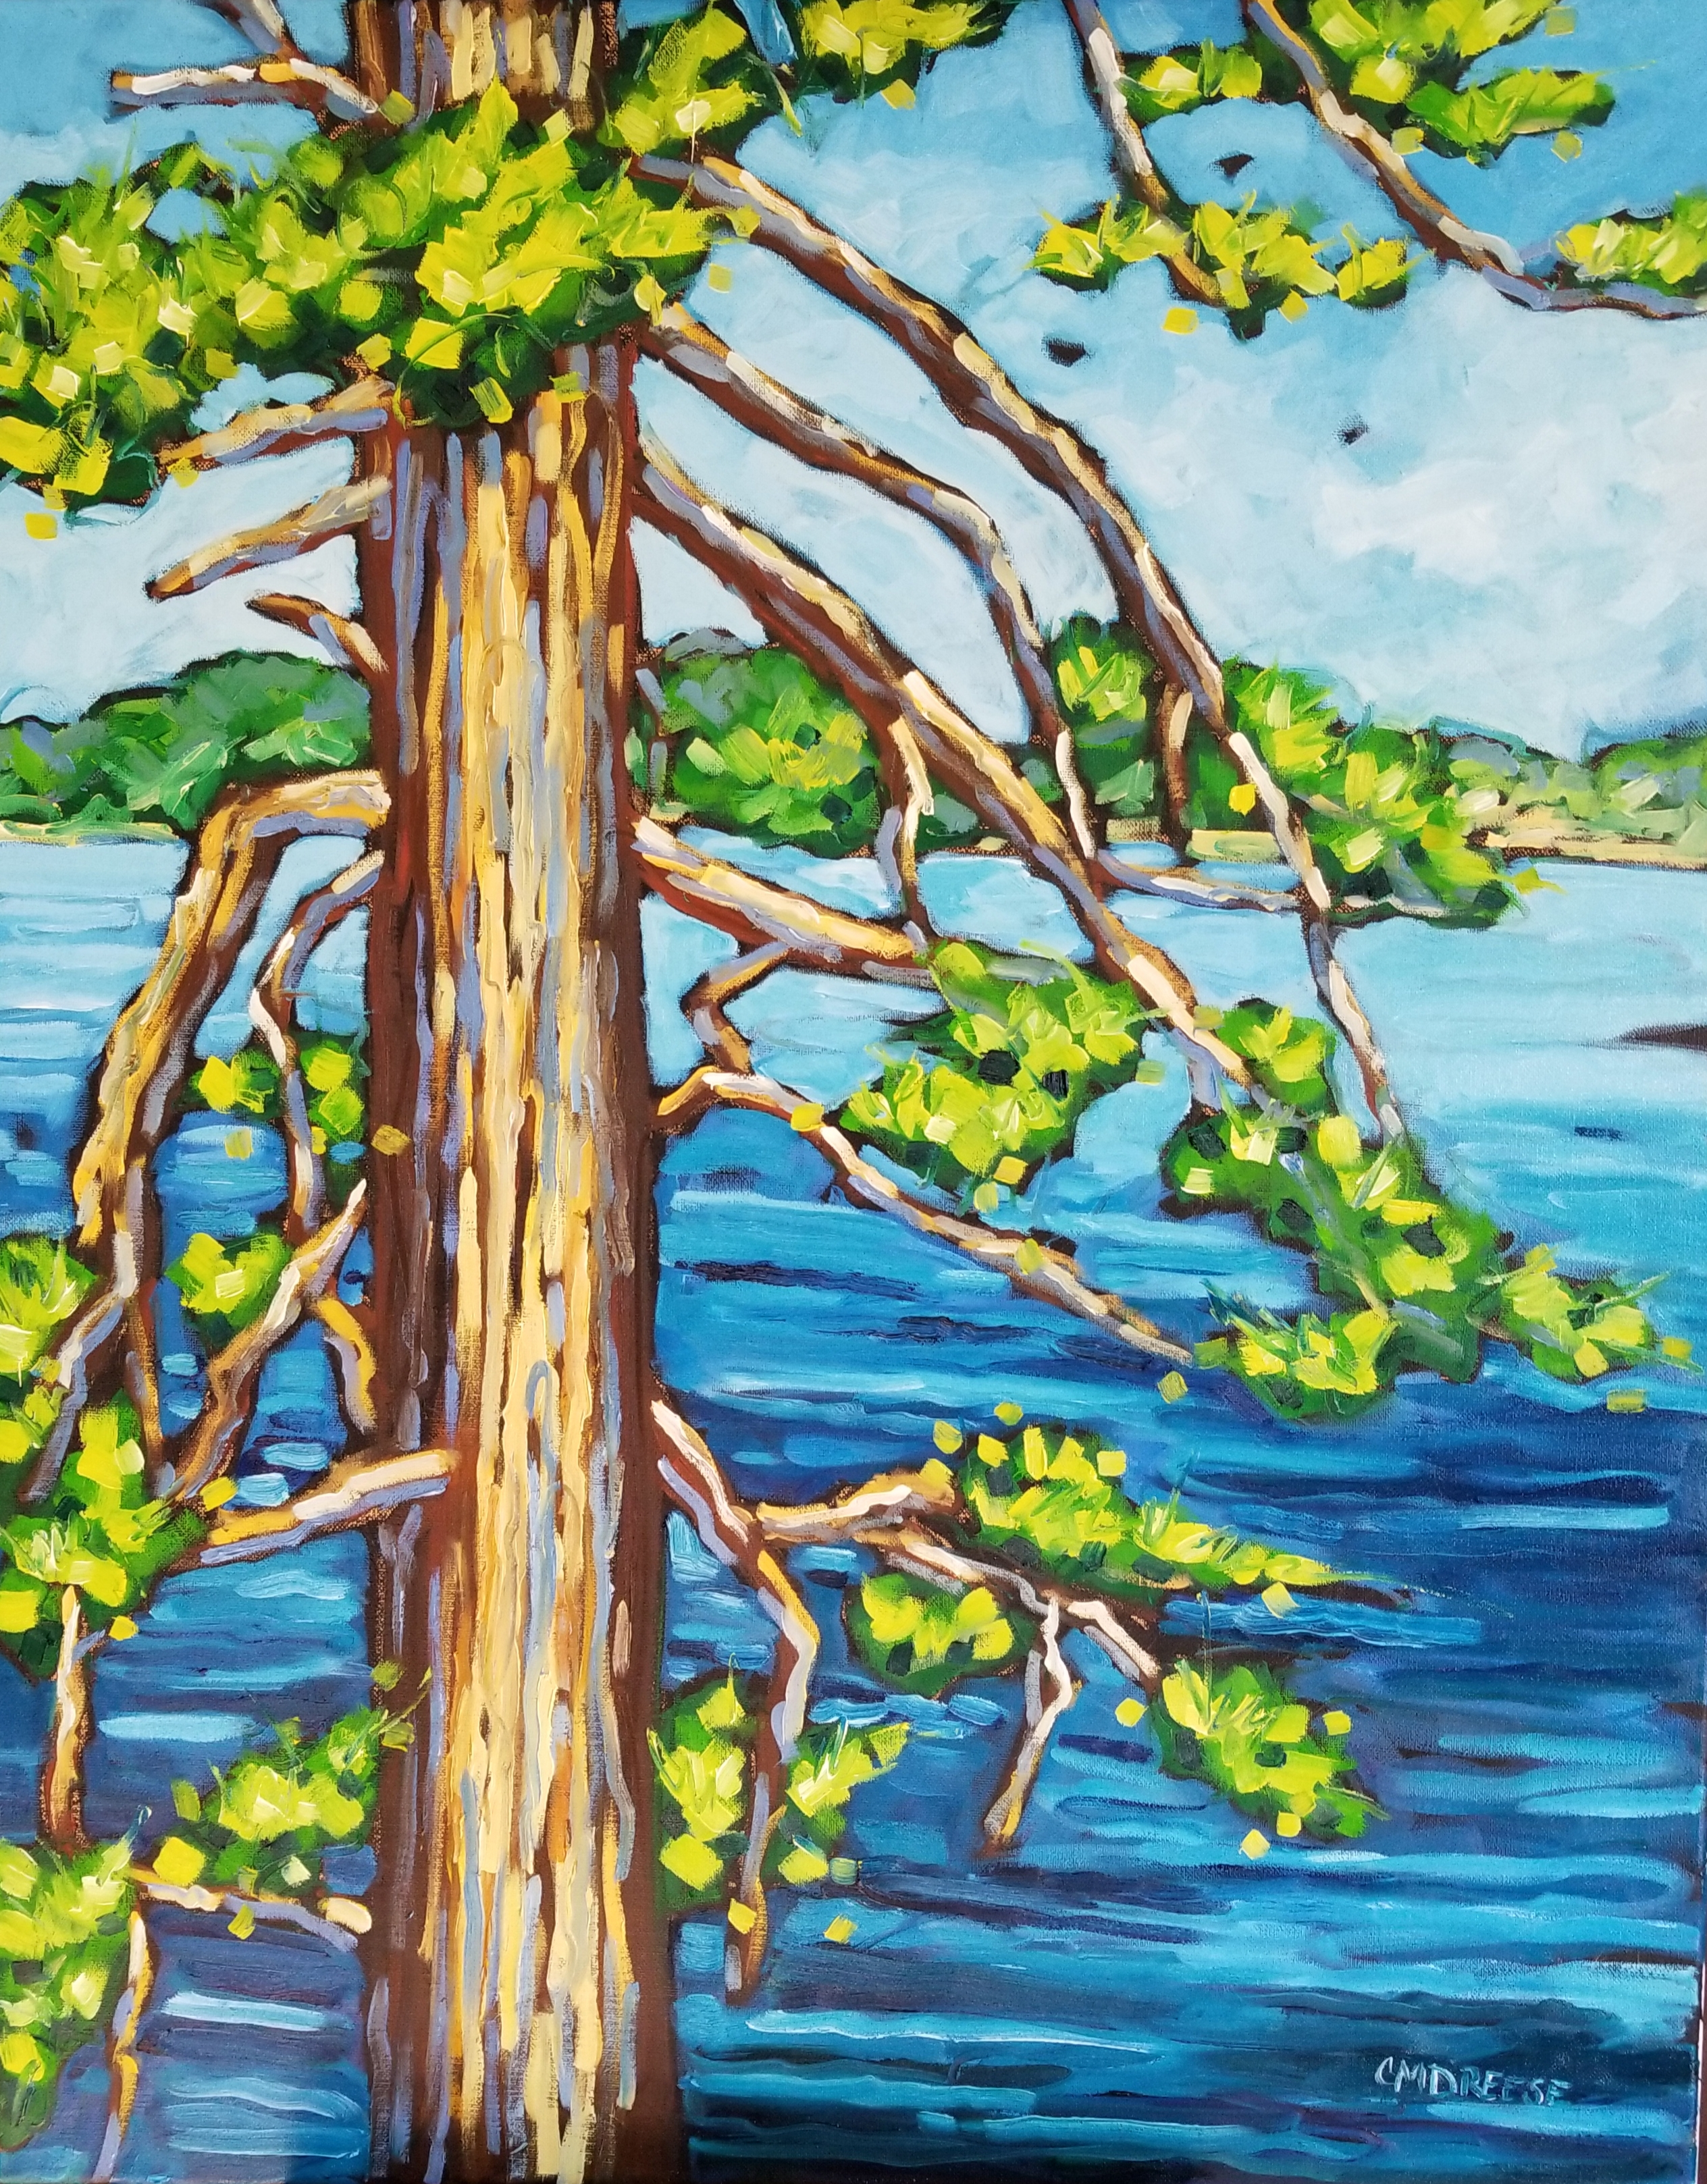 Old Pine Scenic Views 24x30 Christi Dreese Oil Painting